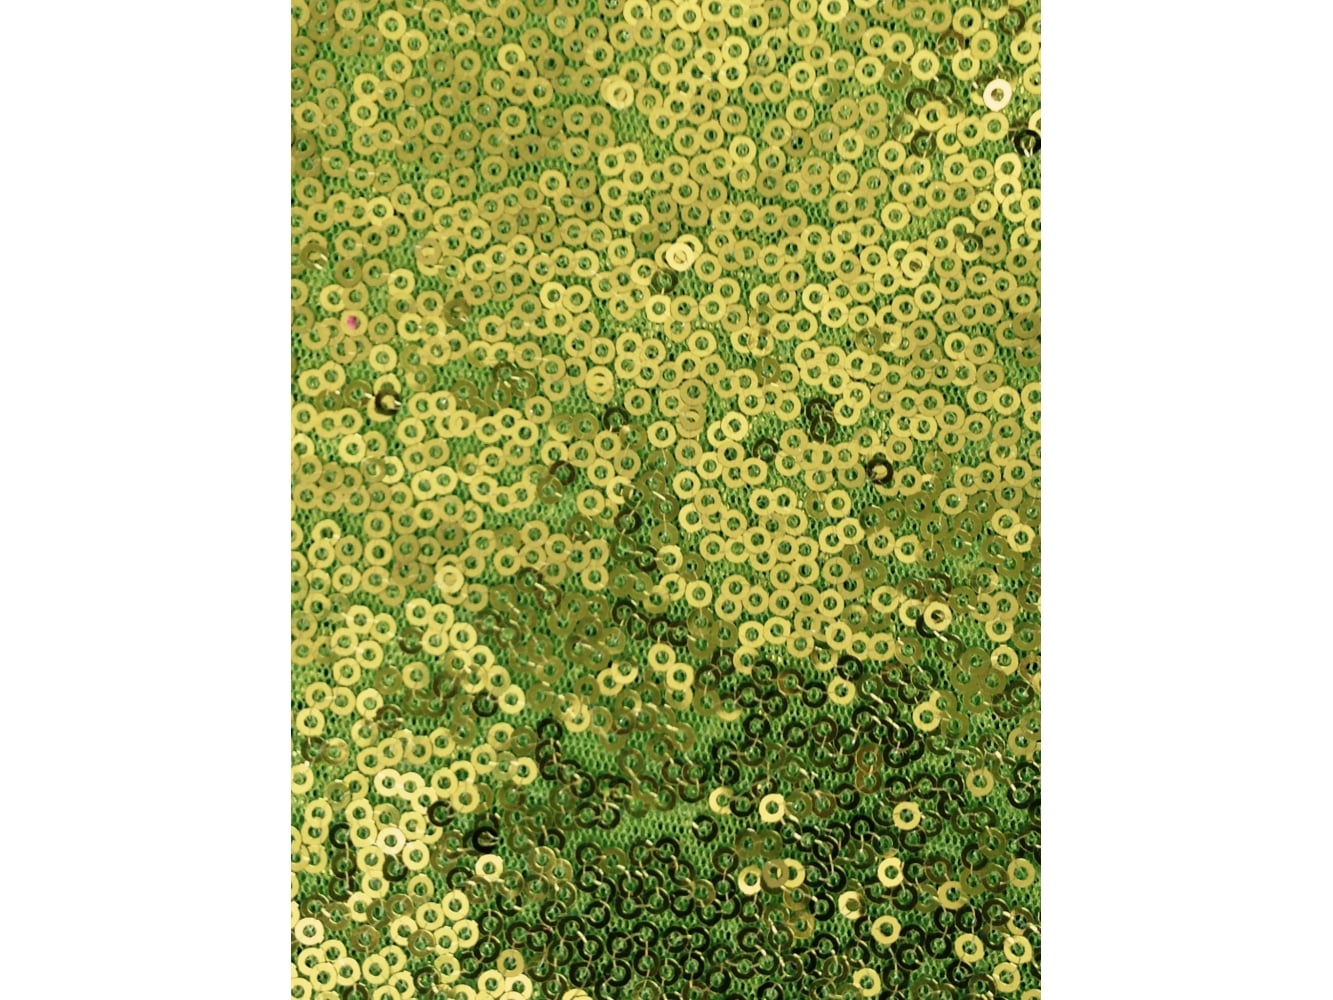 bbae7dd6 Showtime Fabric All Over Stitched 3mm Sequins - Lime SEQ53 LM